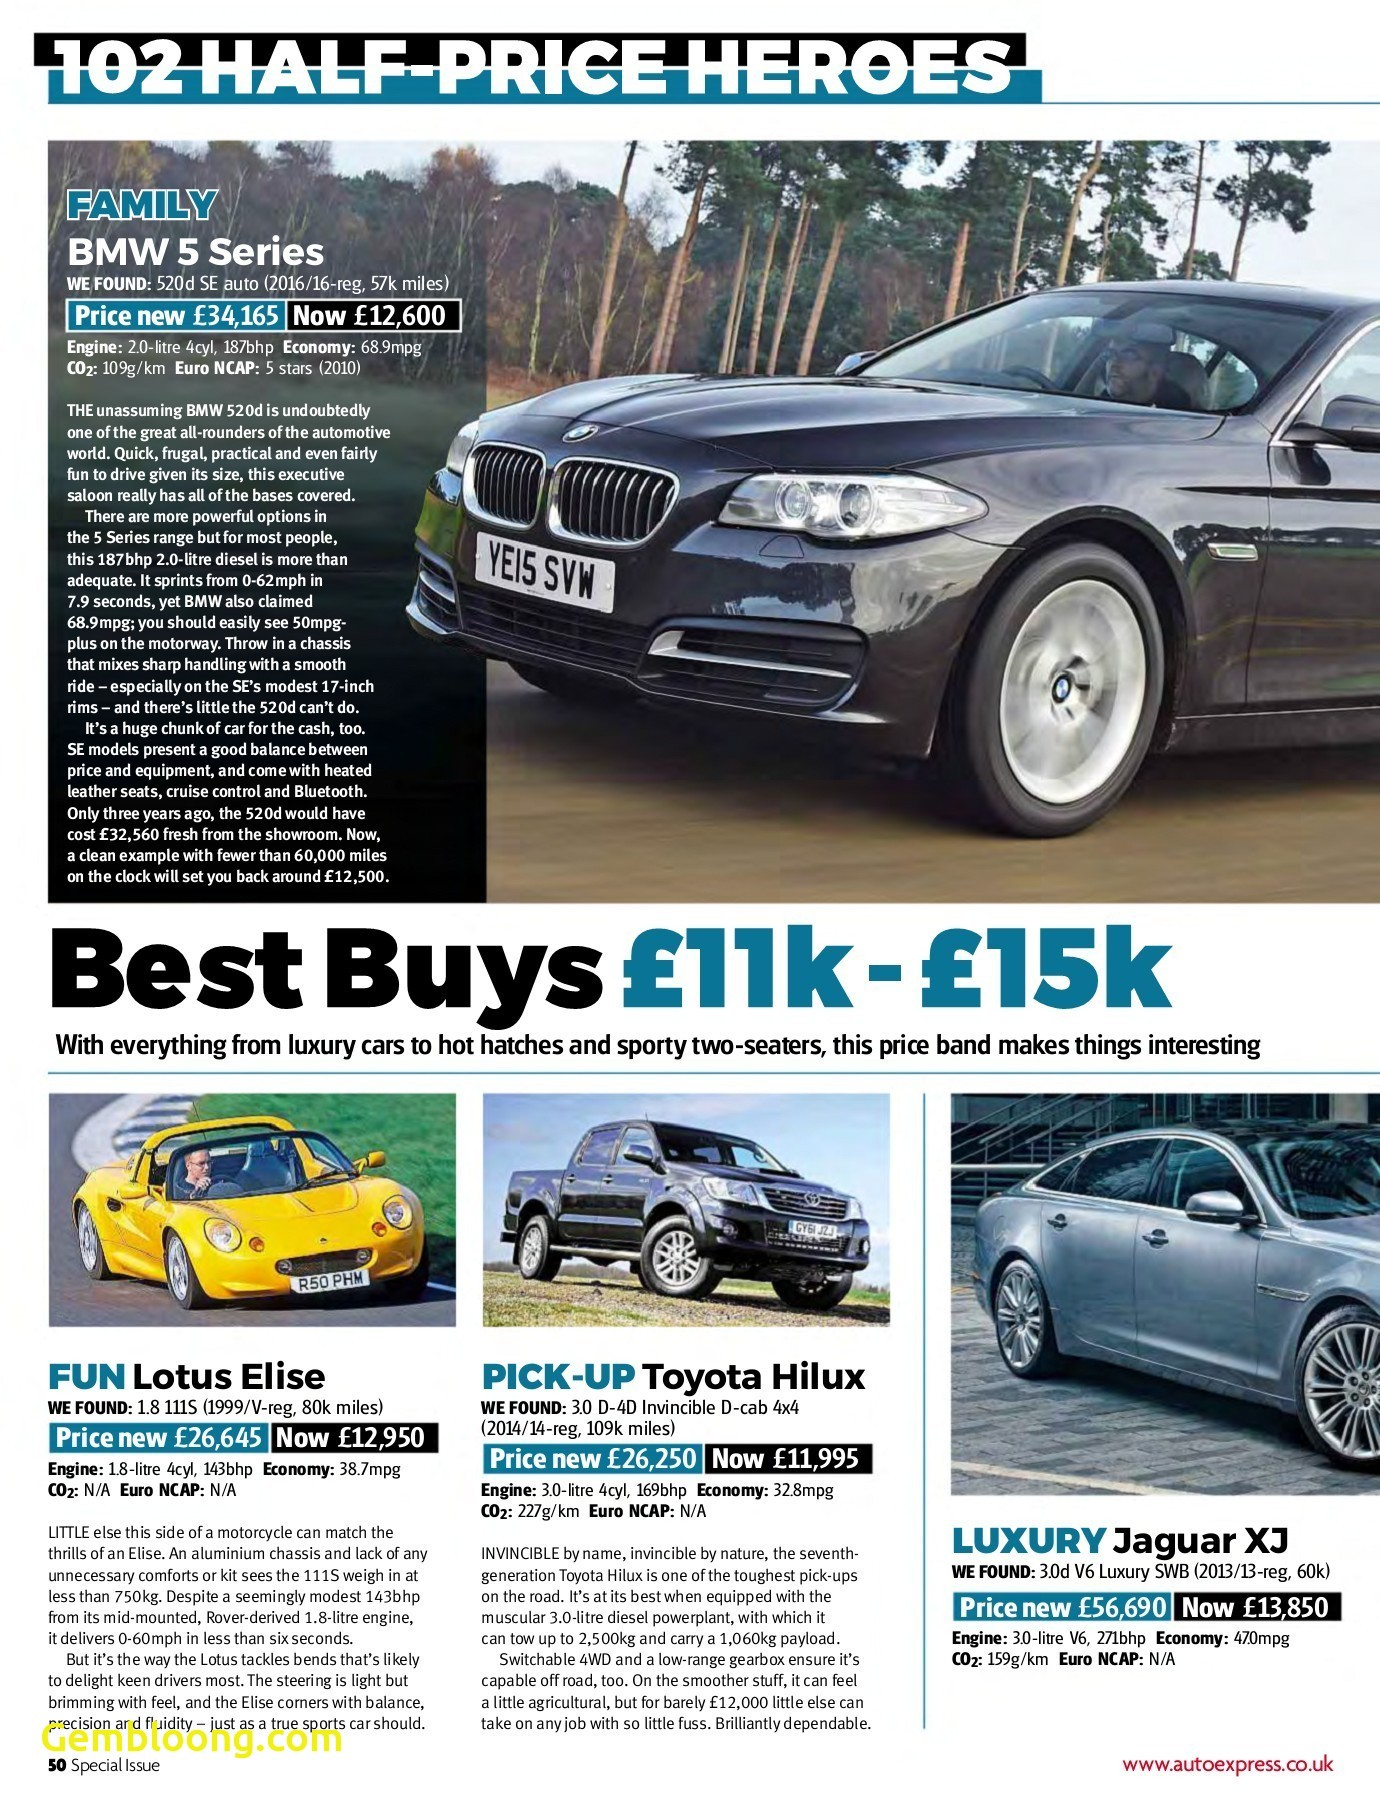 tesla up ing cars best of auto express 5 june 2019 pages 51 100 text version of tesla up ing cars